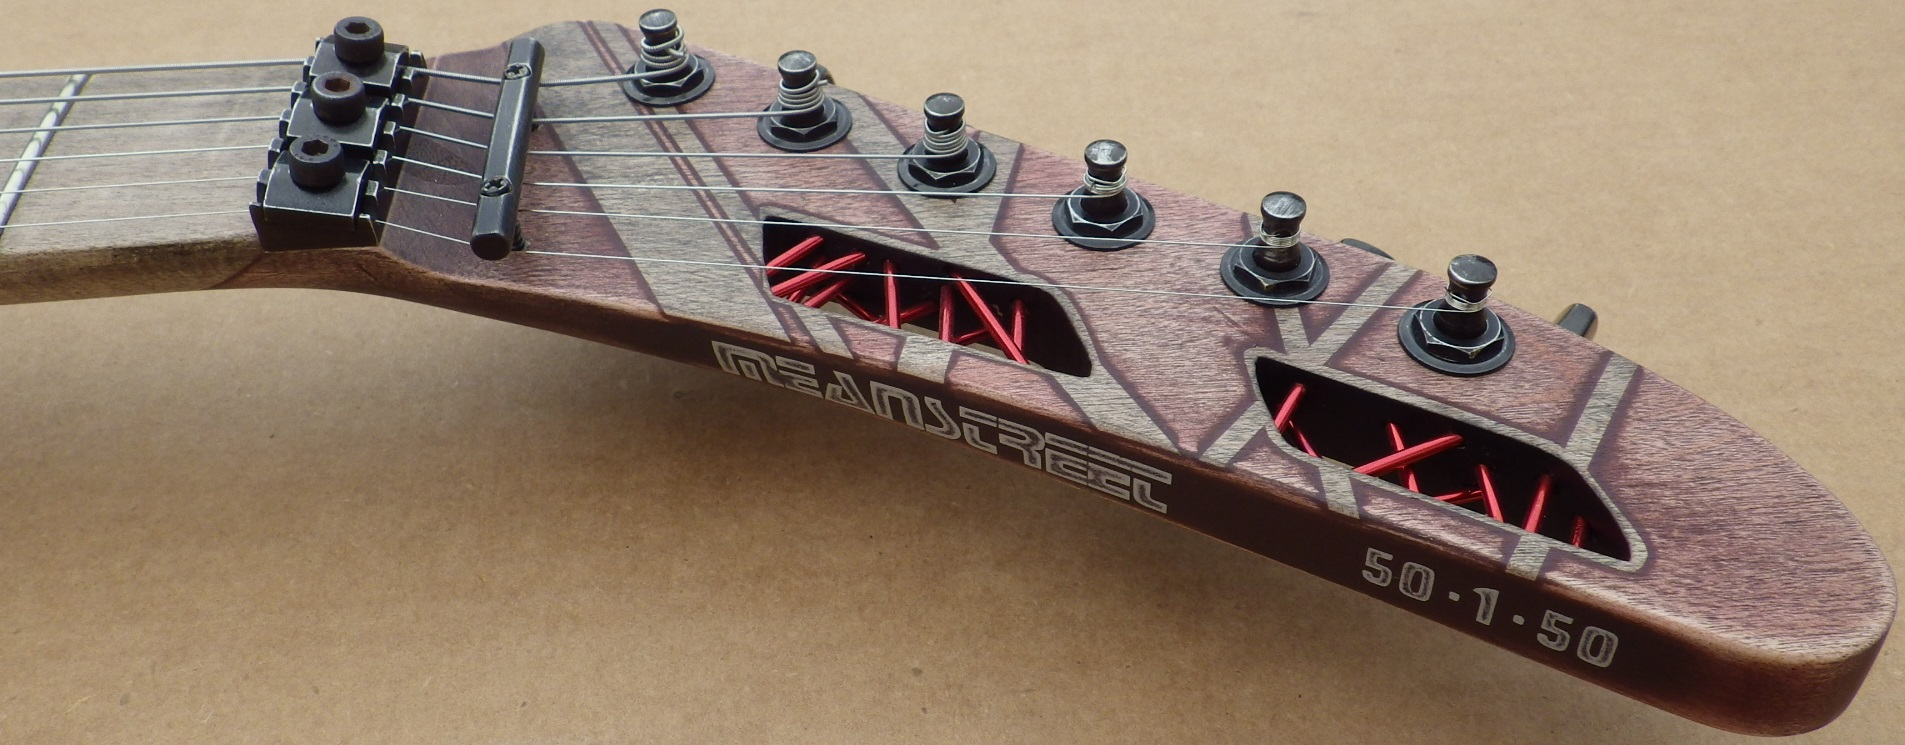 Mean Street Guitars Industrial 50 1 50 Pipeline 01 maroon pic 5.jpg